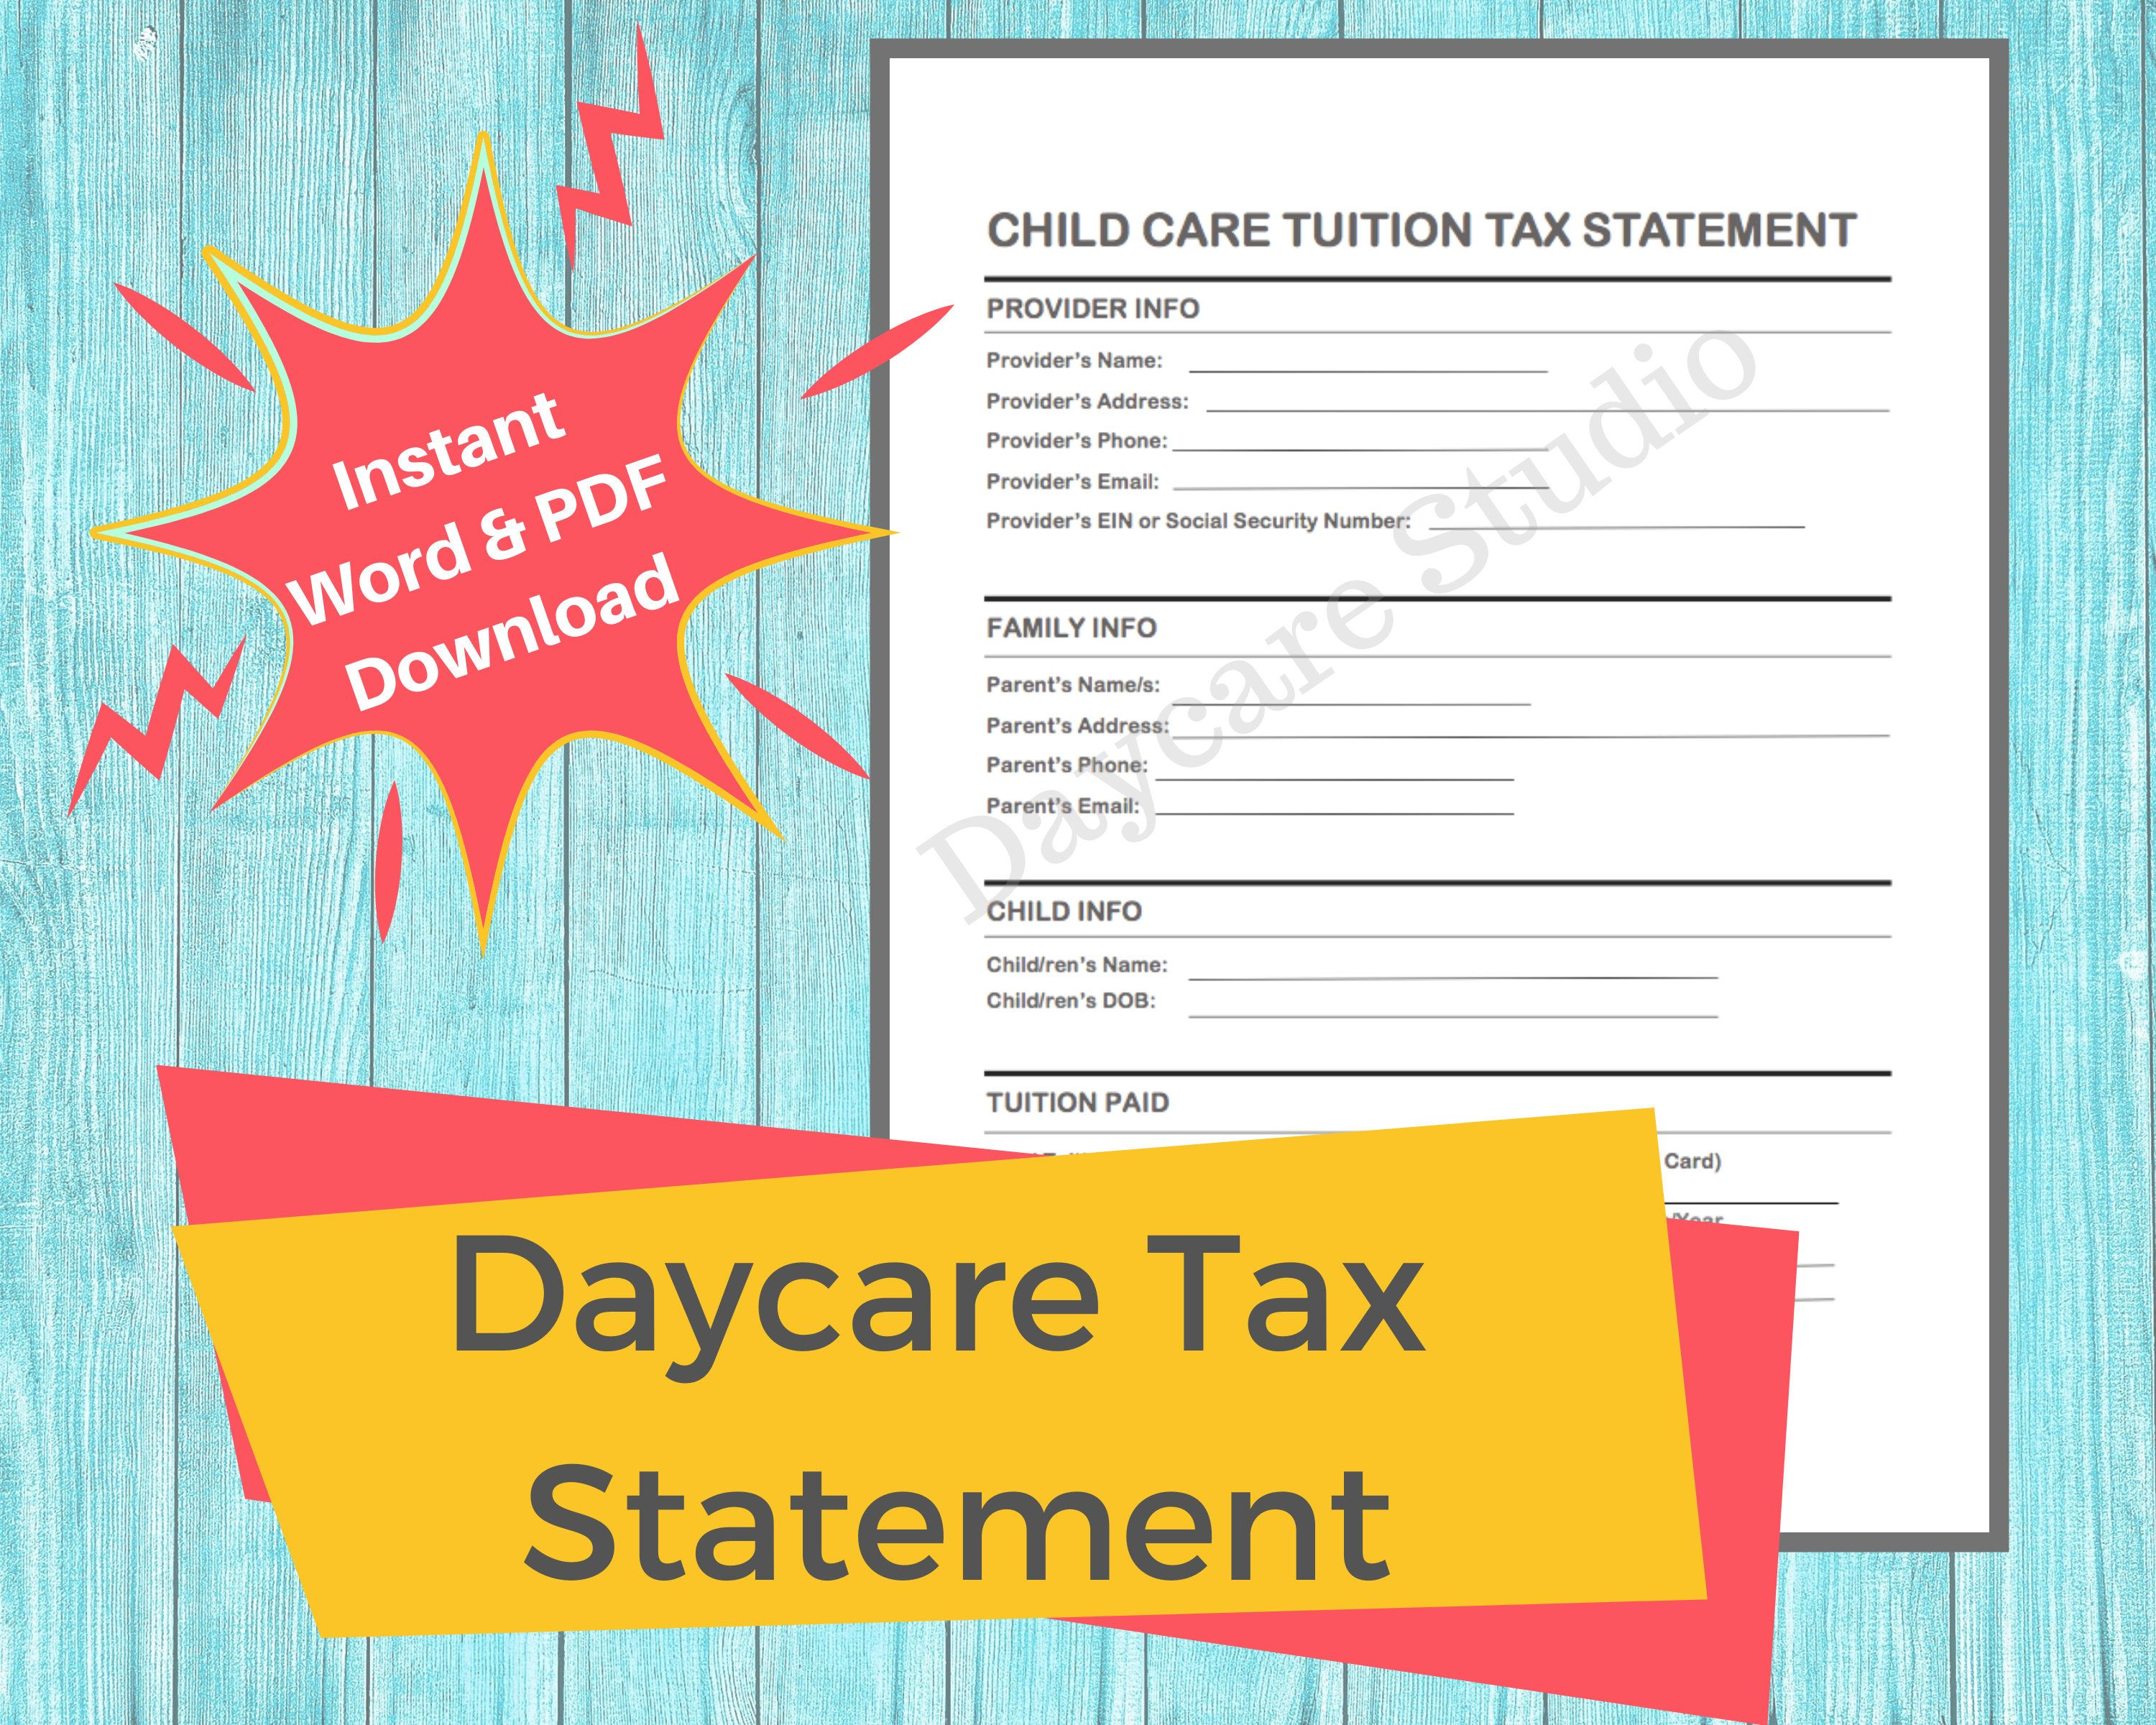 Daycare Tax Statement Childcare Center Printable End Of